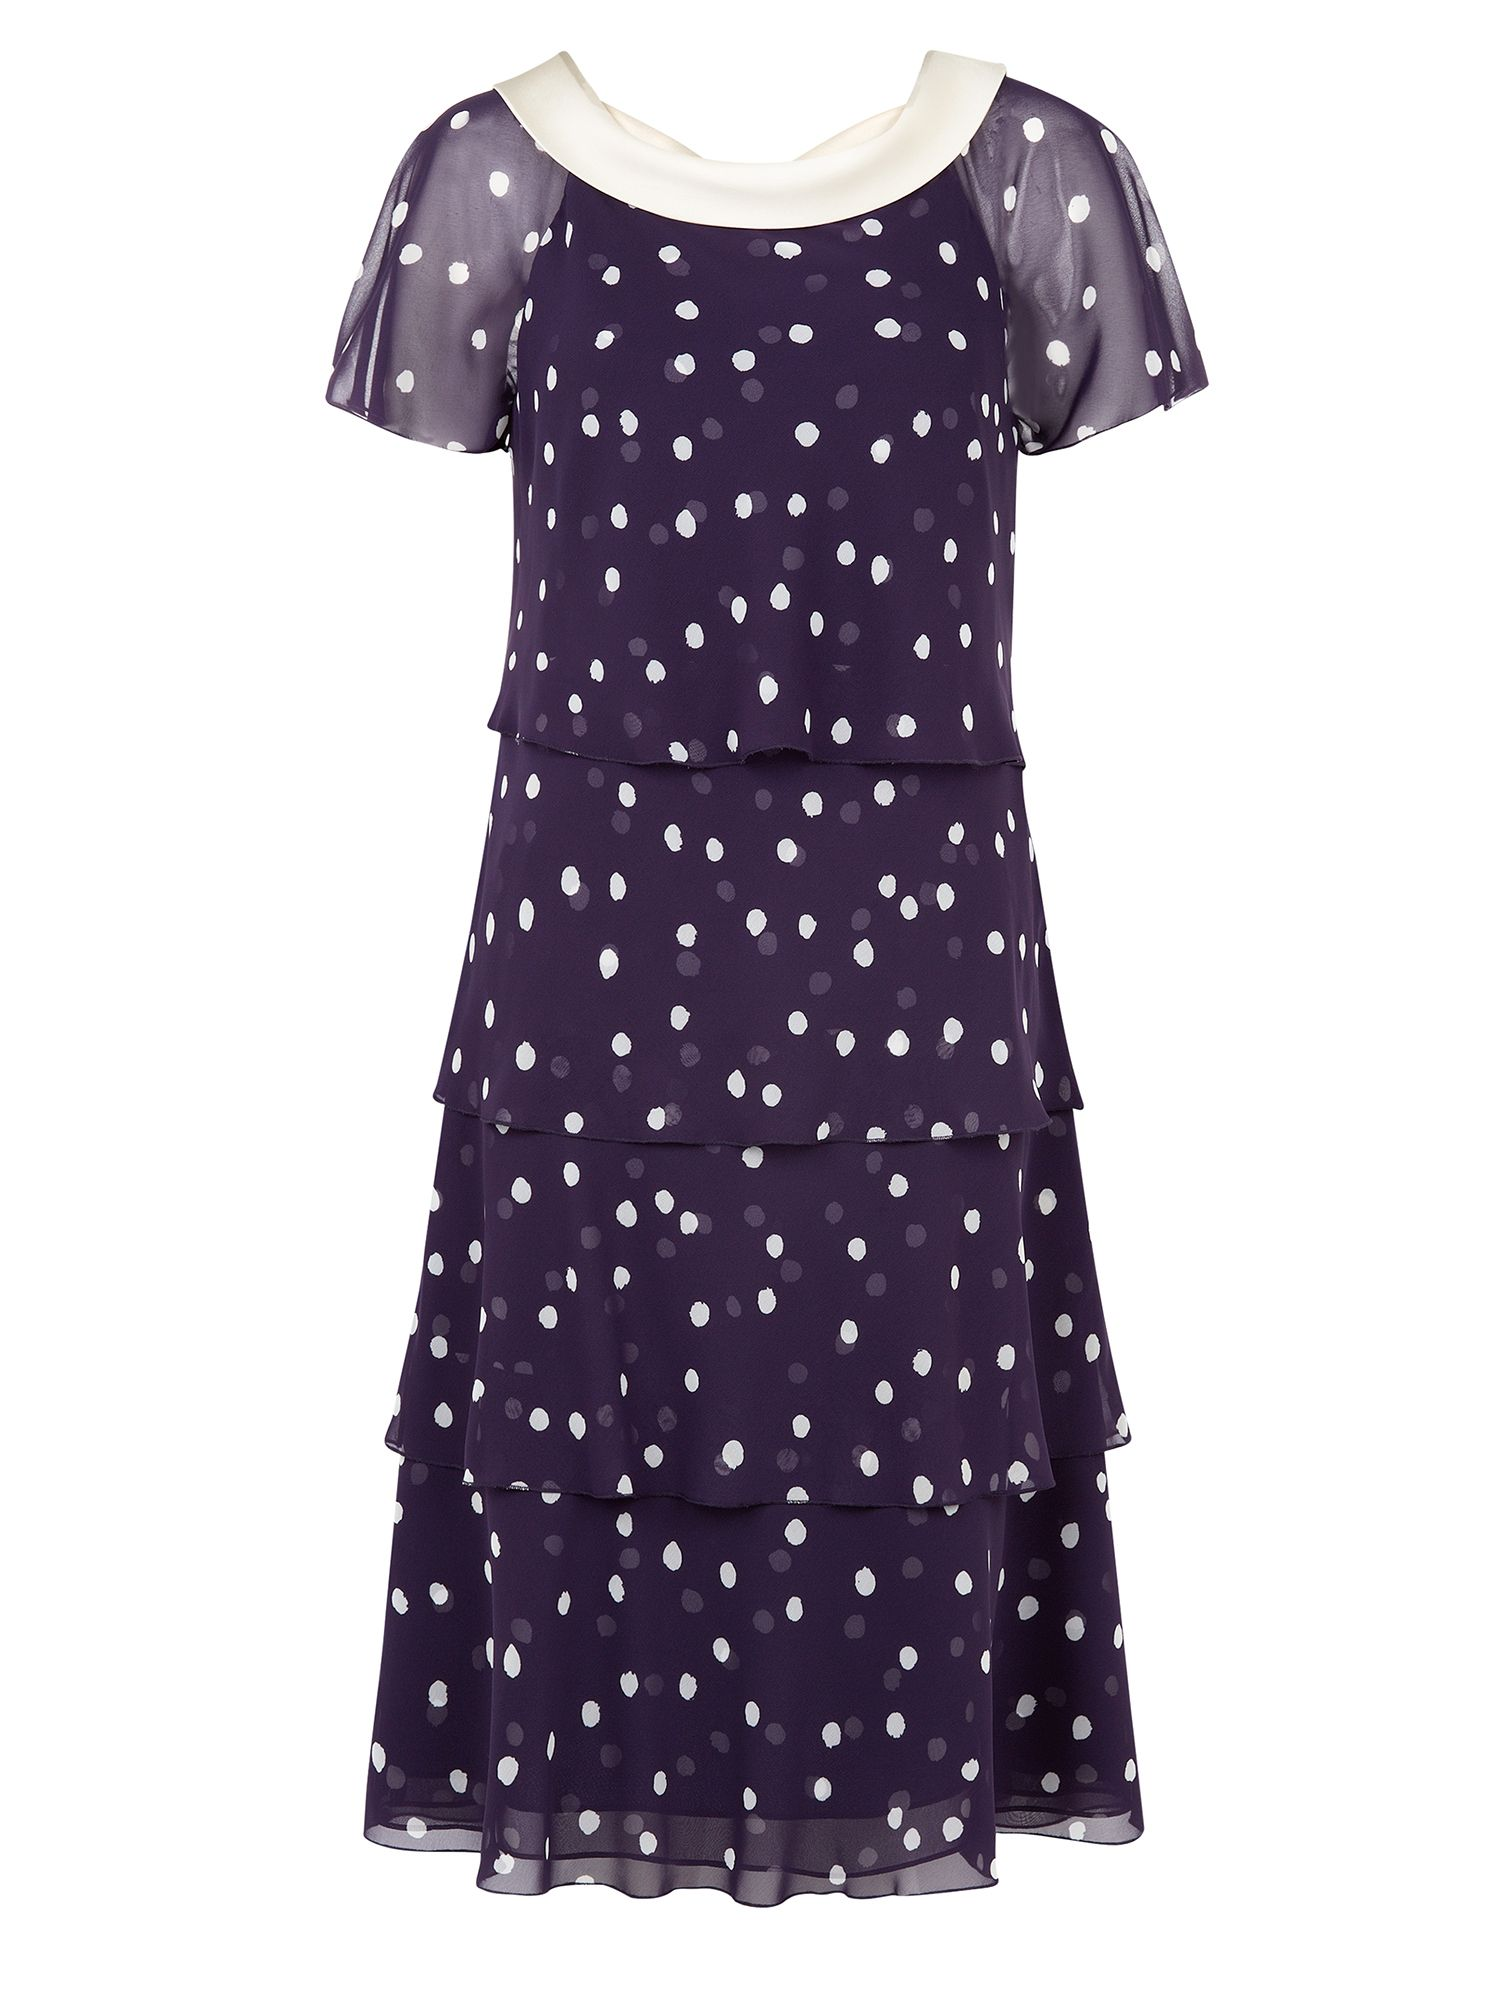 Jacques Vert Petite Spot Print Tiered Dress $79.00 AT vintagedancer.com